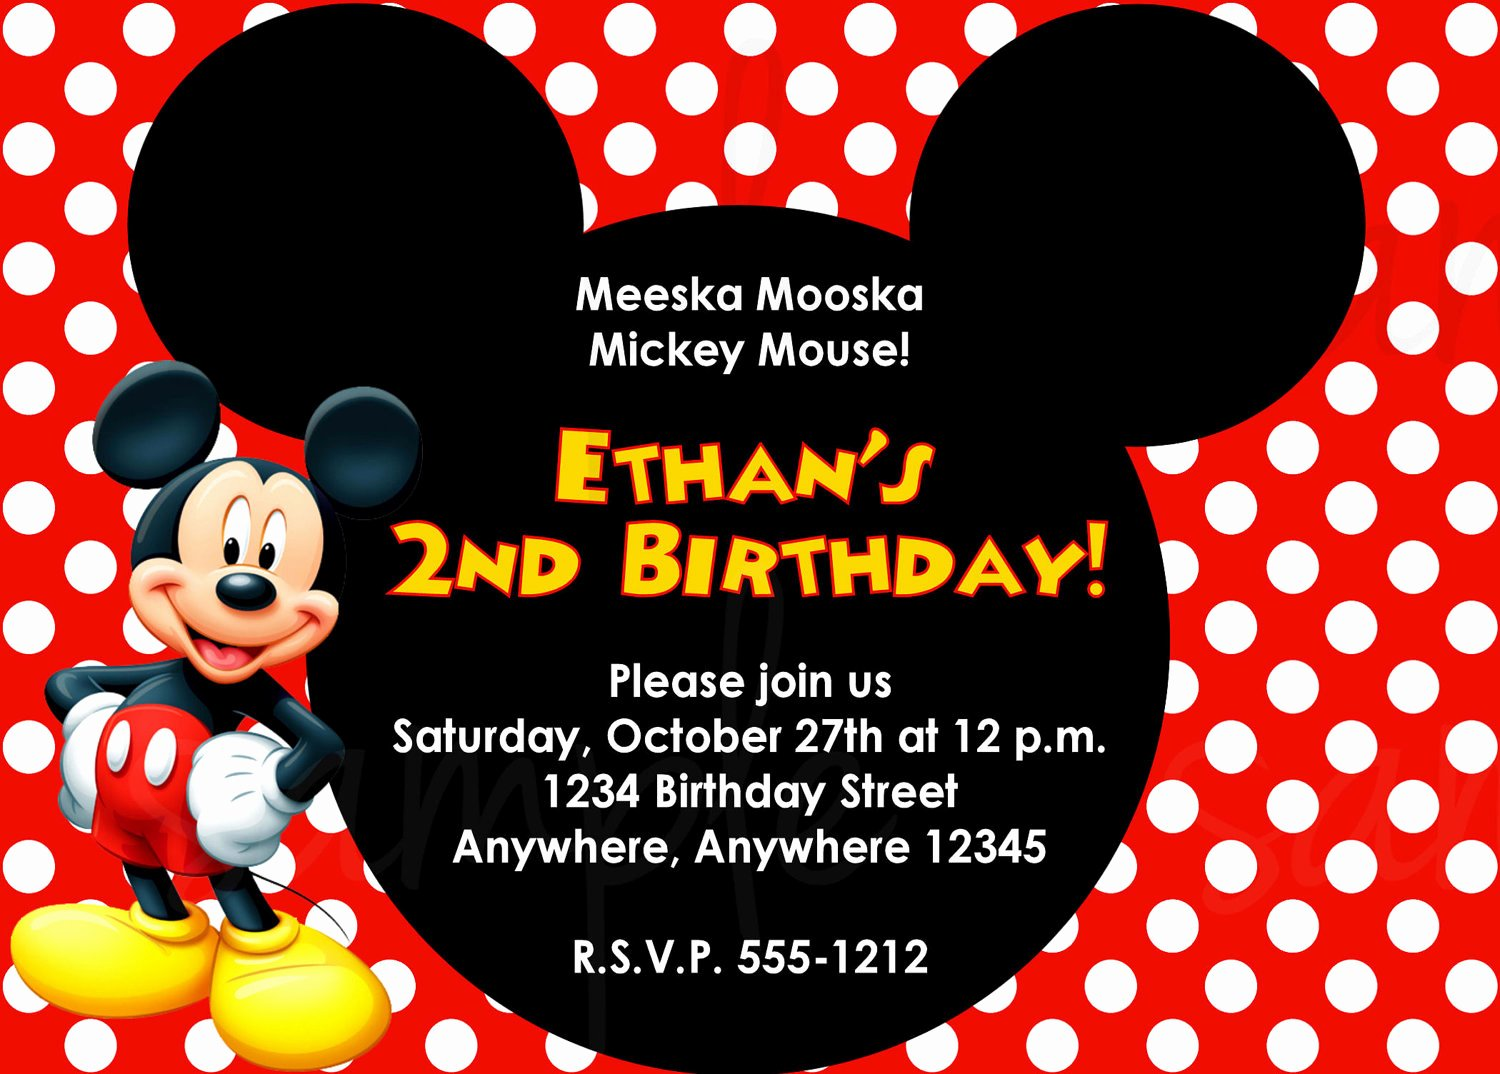 Mickey Mouse Birthday Invitation Template Best Of Mickey Mouse Birthday Invitation